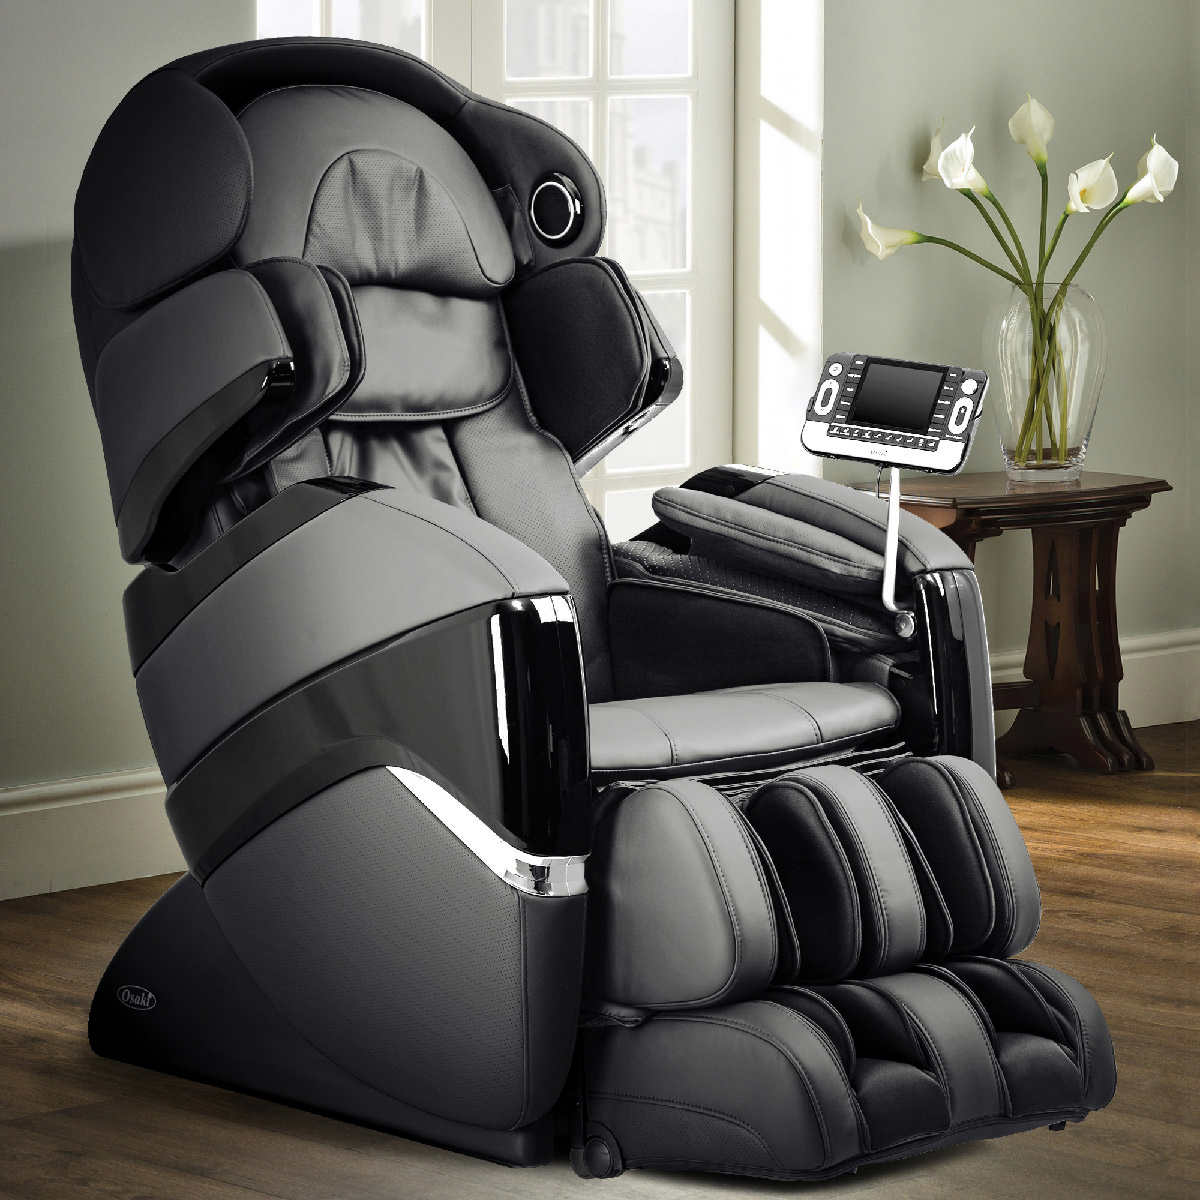 Osaki OS 3D Pro Cyber Massage ChairMassage Chairs   Costco. Infinity Massage Chairs Canada. Home Design Ideas